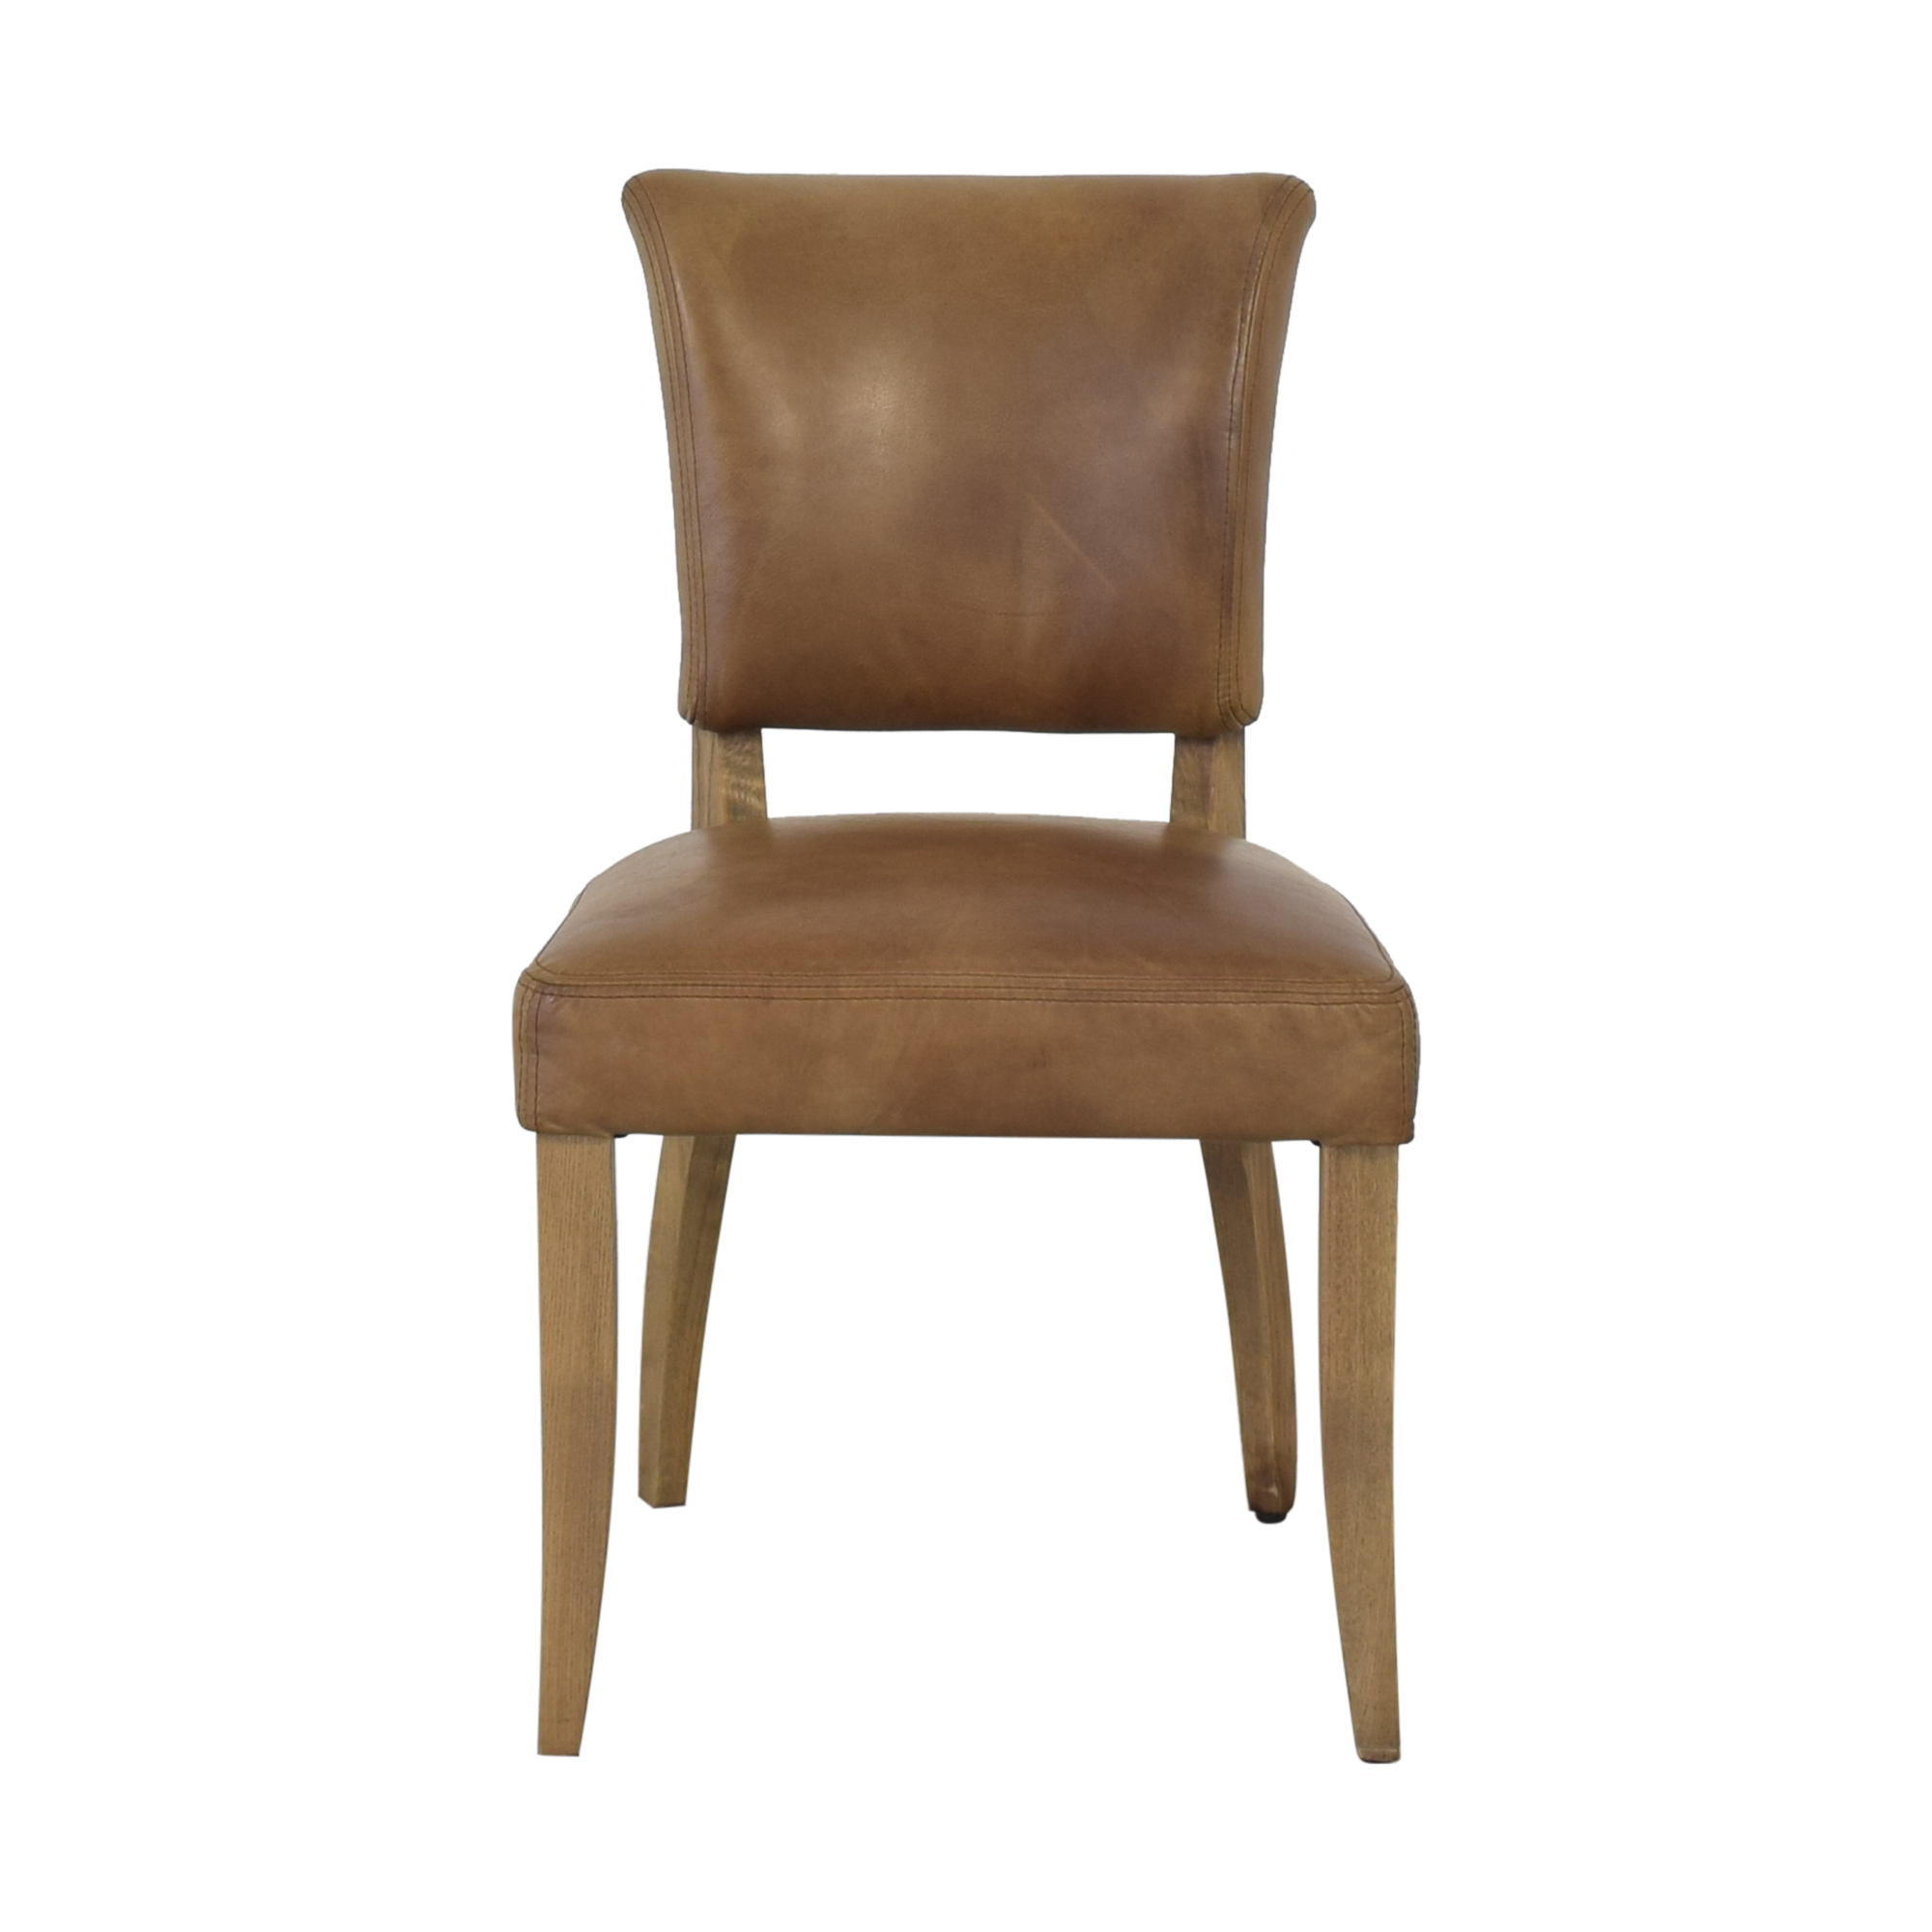 Restoration Hardware Restoration Hardware Adele Leather Side Chair coupon